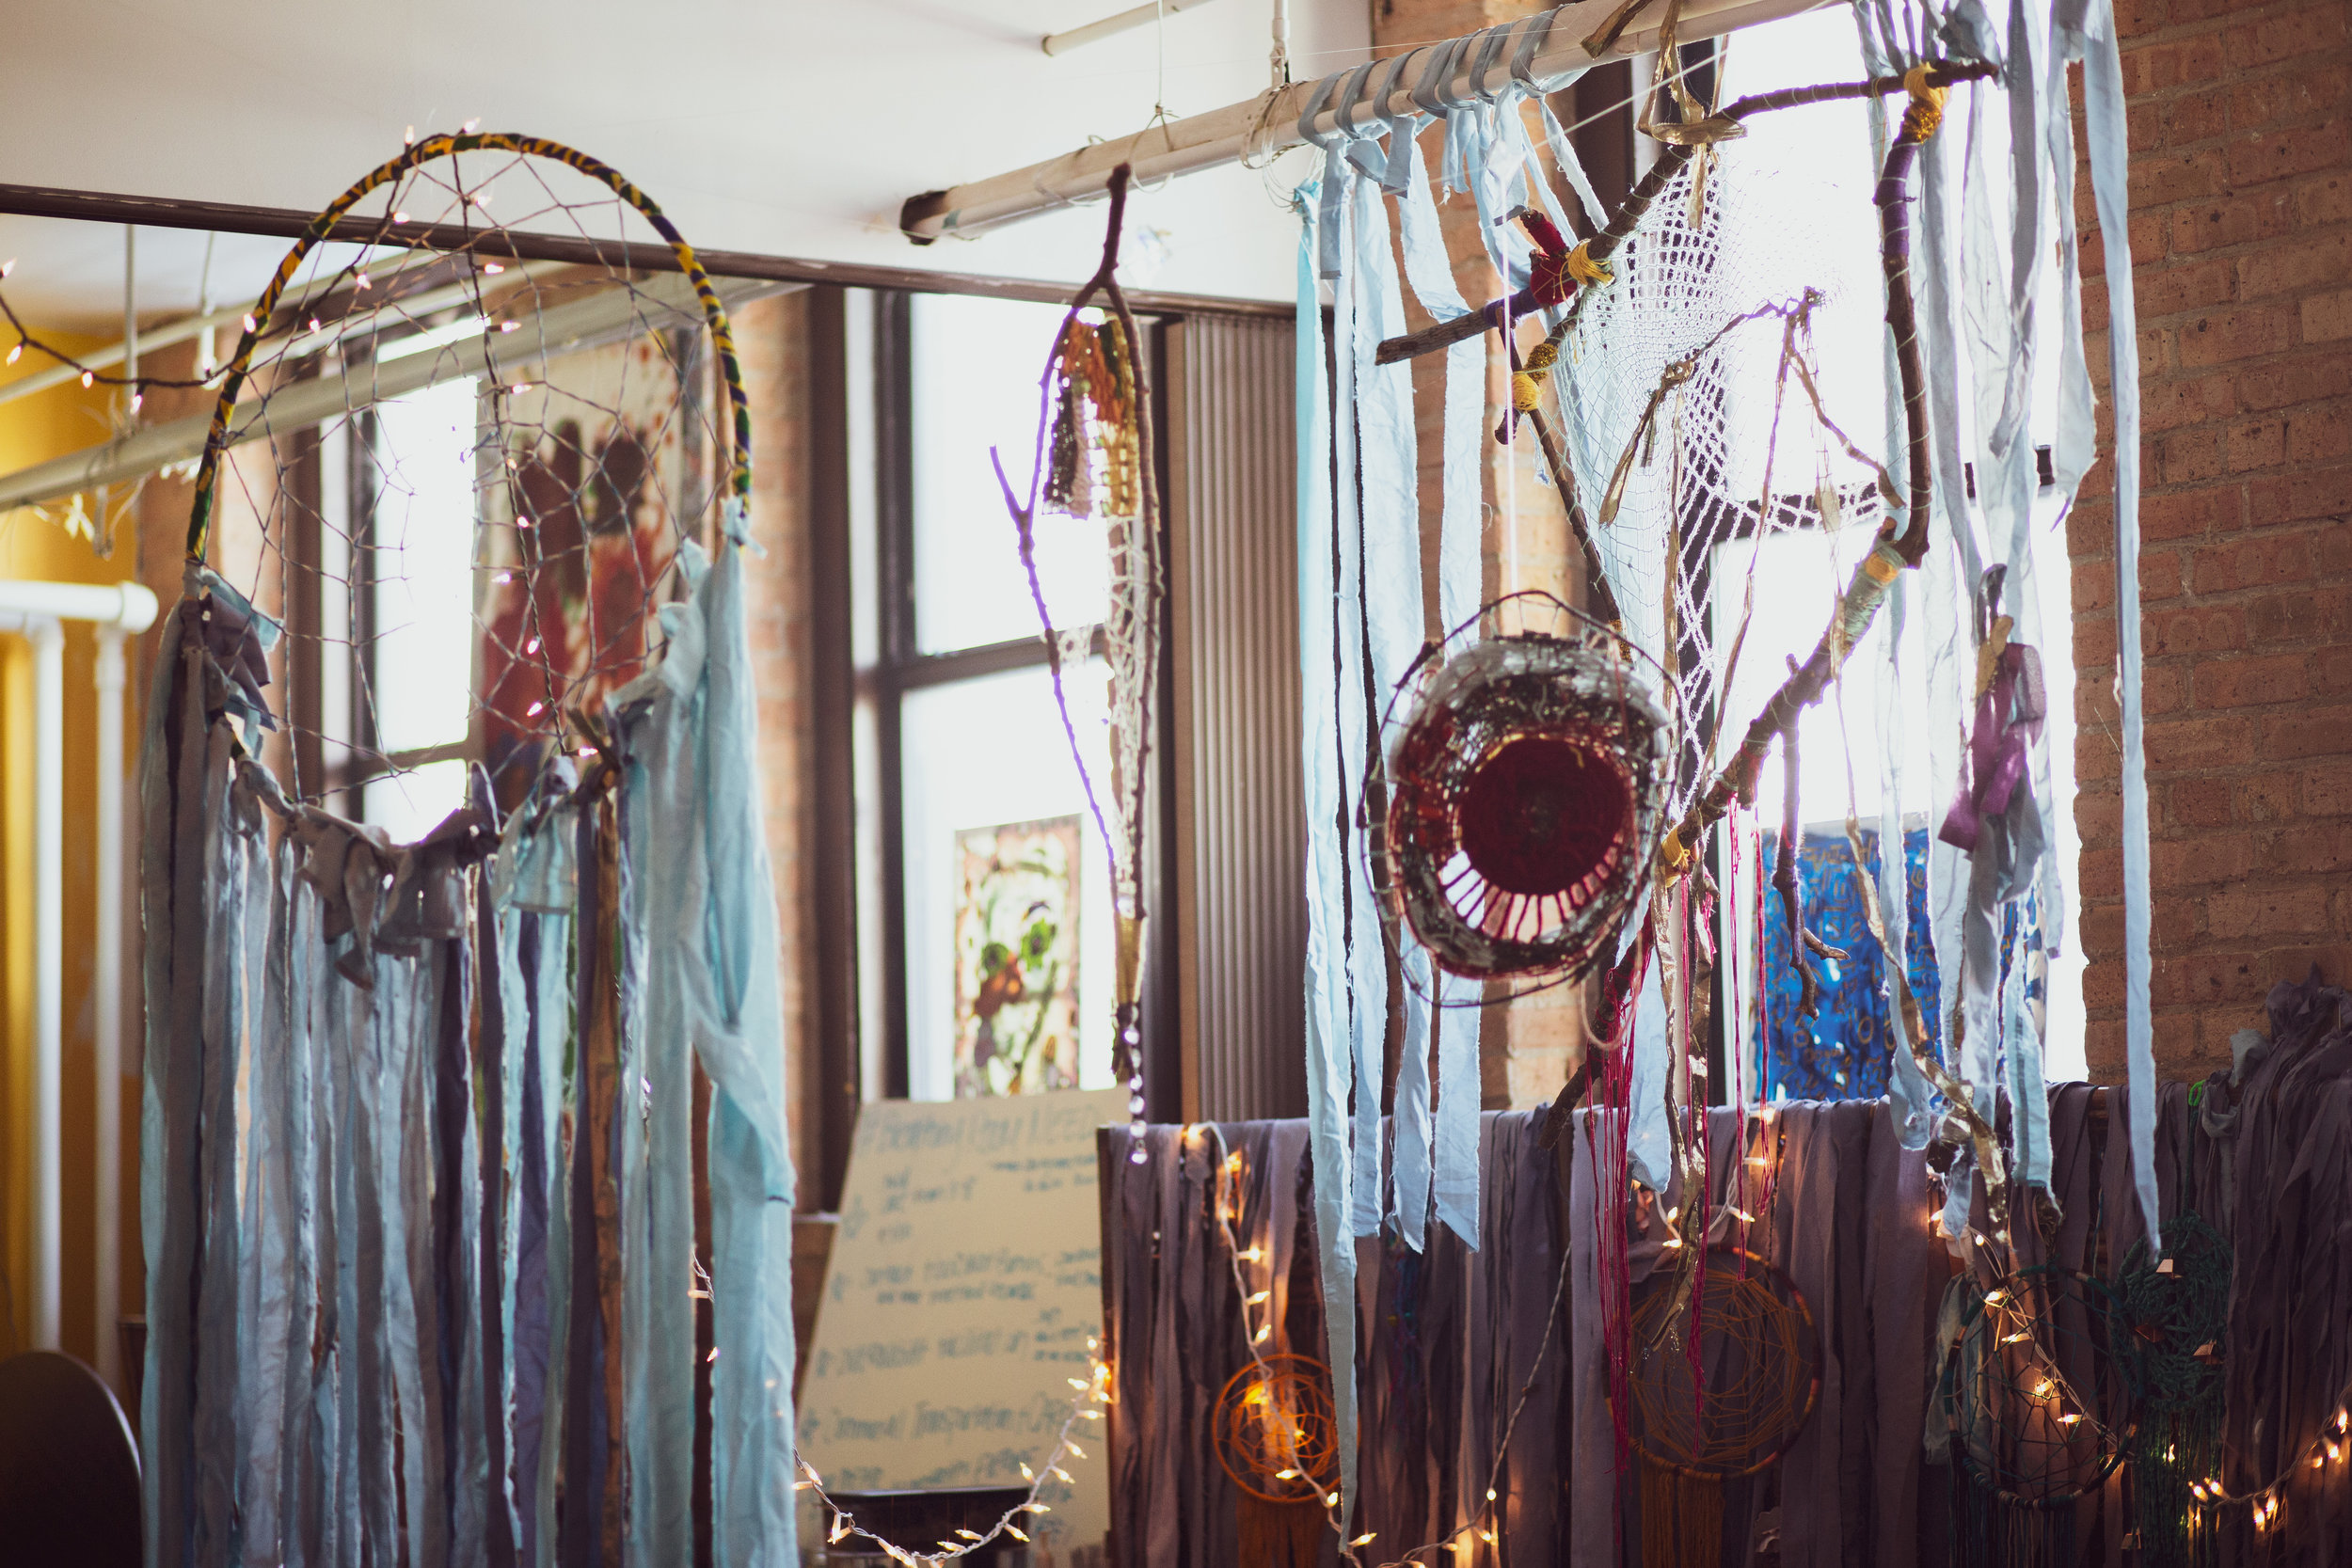 Dream weaving installation for Eclipsing Festival opening ceremony January 2019